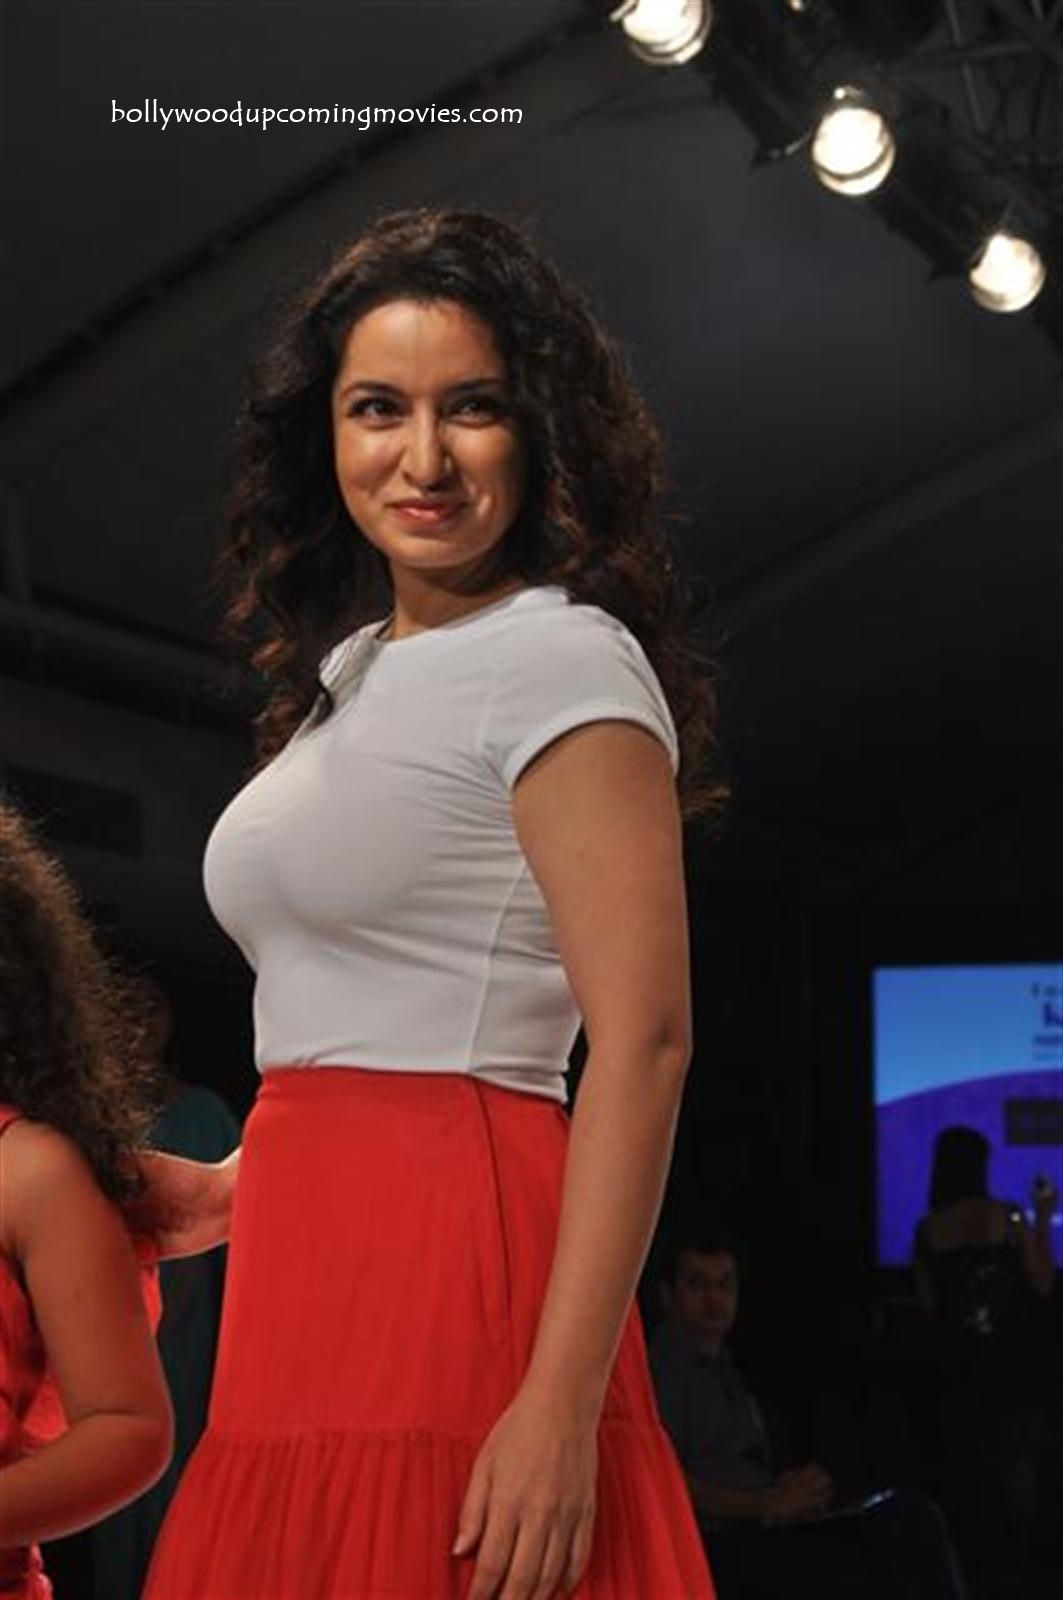 tisca chopra hot picture